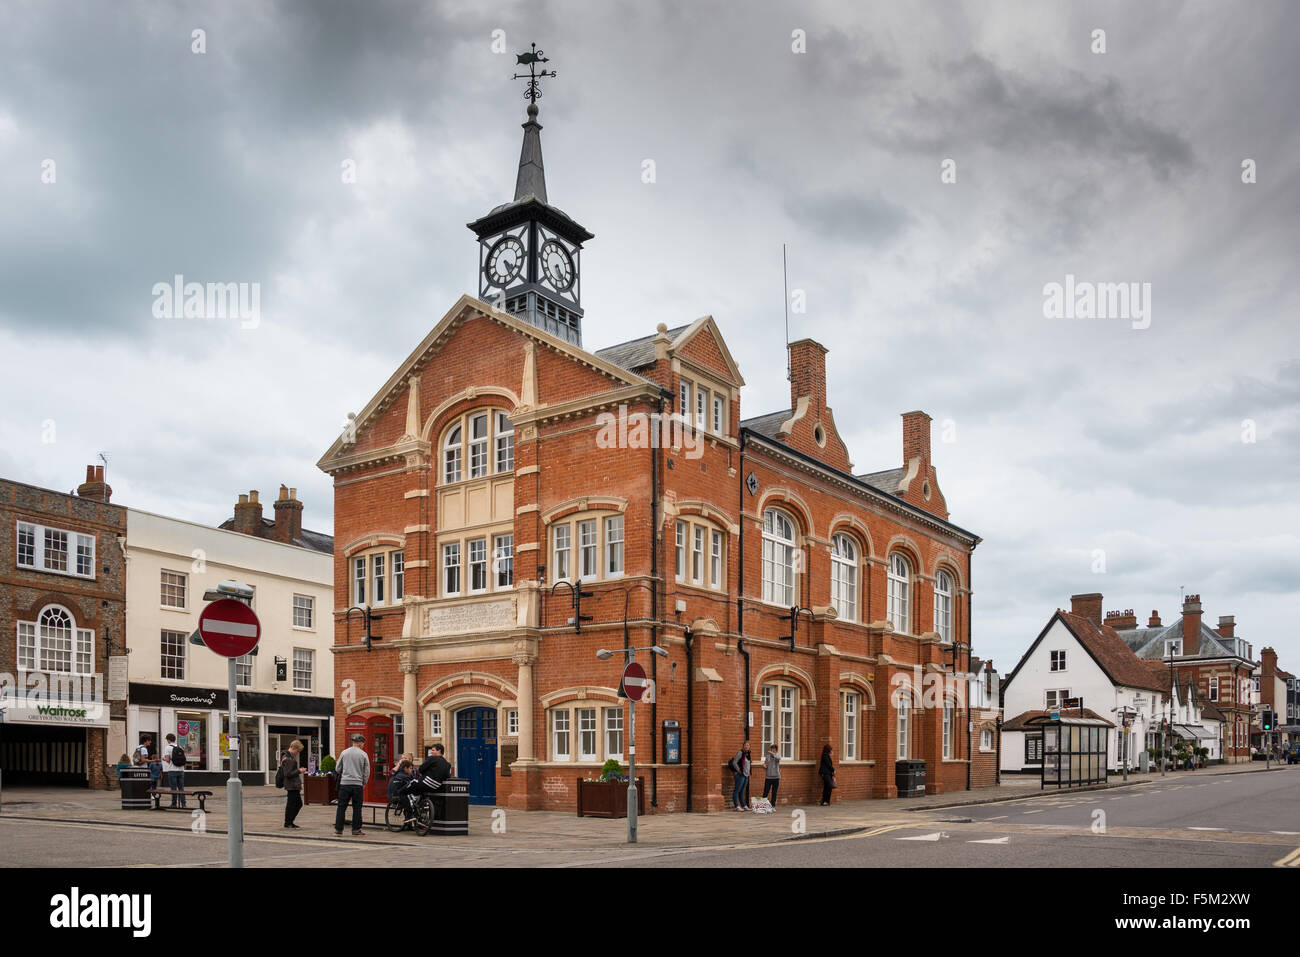 Oxfordshire Thame town showing town hall clock tower buildings street - Stock Image